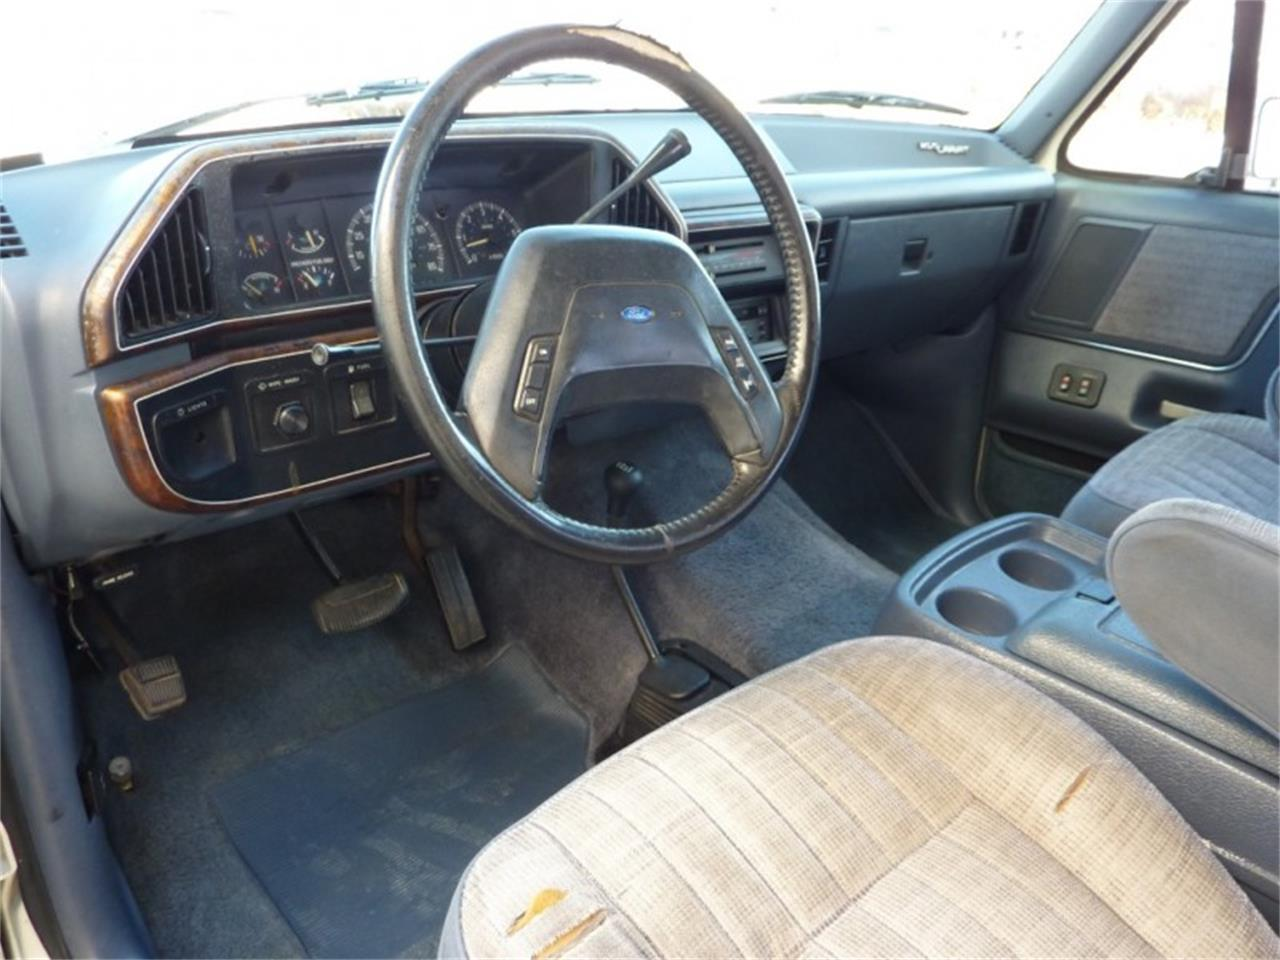 1989 Ford 3/4 Ton Pickup for sale in Pahrump, NV – photo 24